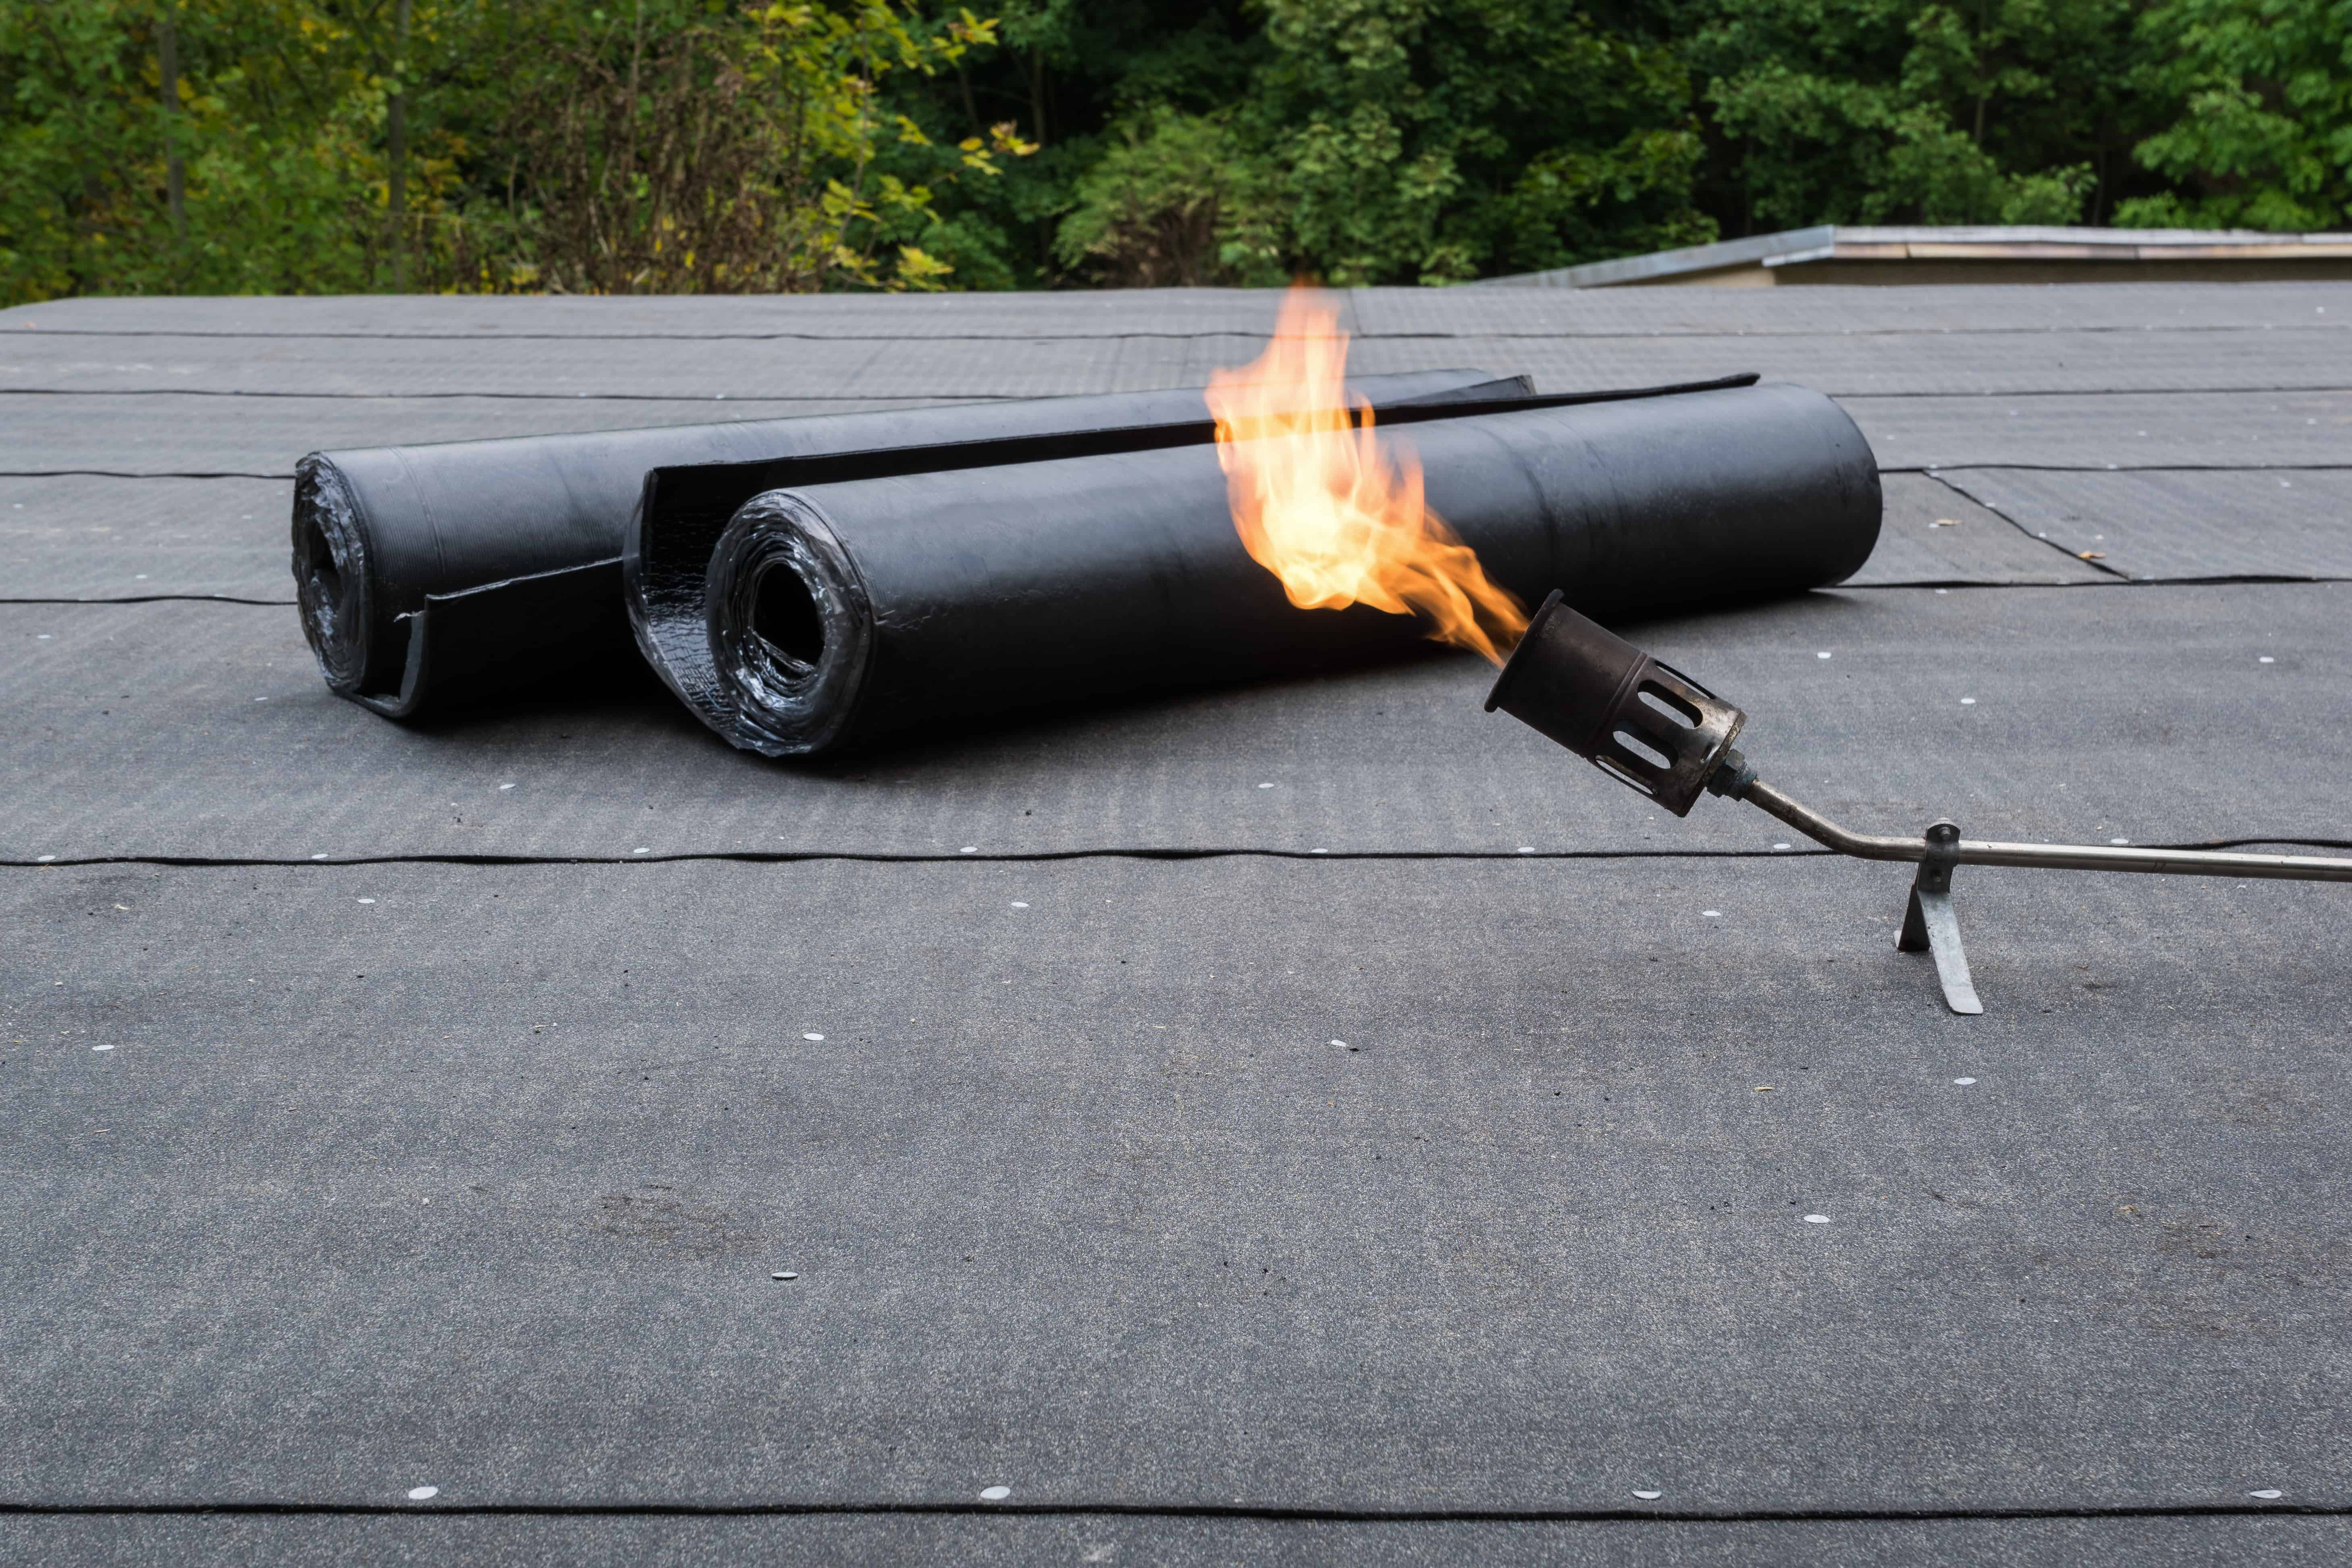 Flat Roof Materials - Torch On Roofing Materials next to a Lit Torch